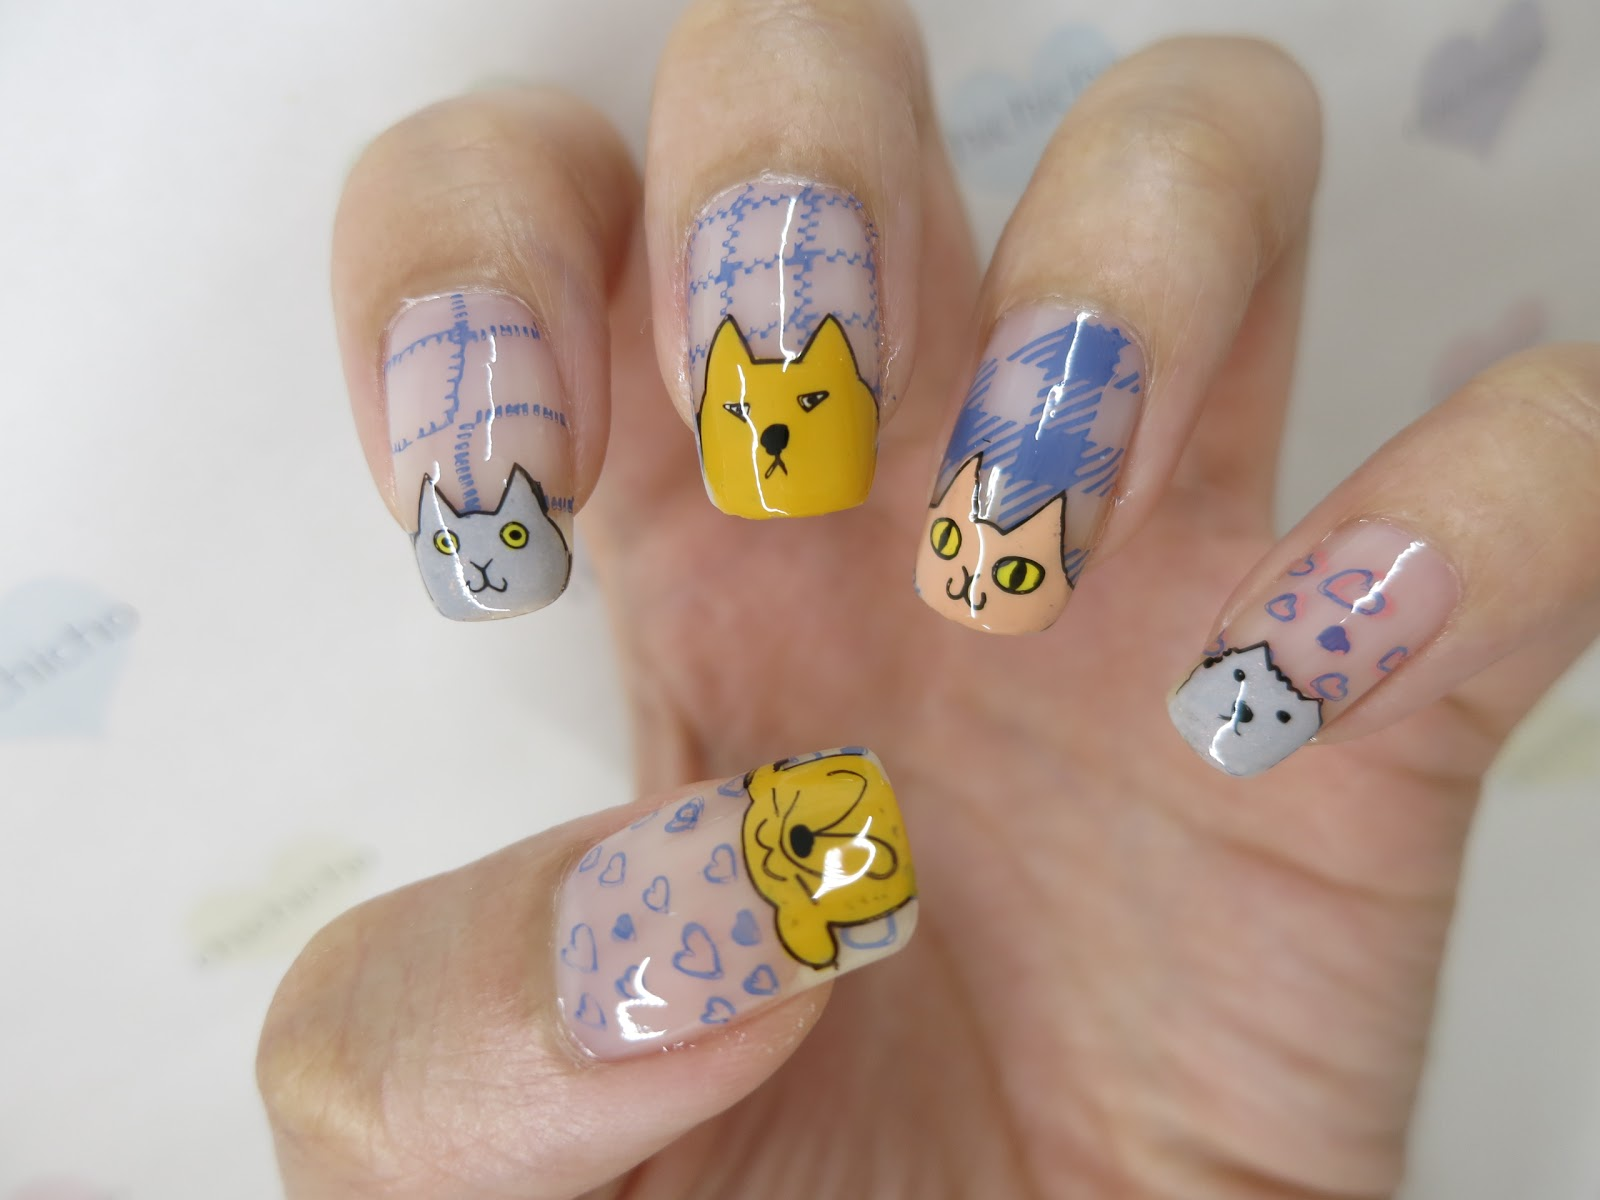 Cats and Dogs Nail Art with Image Plate 春の歌-20 - chichicho~